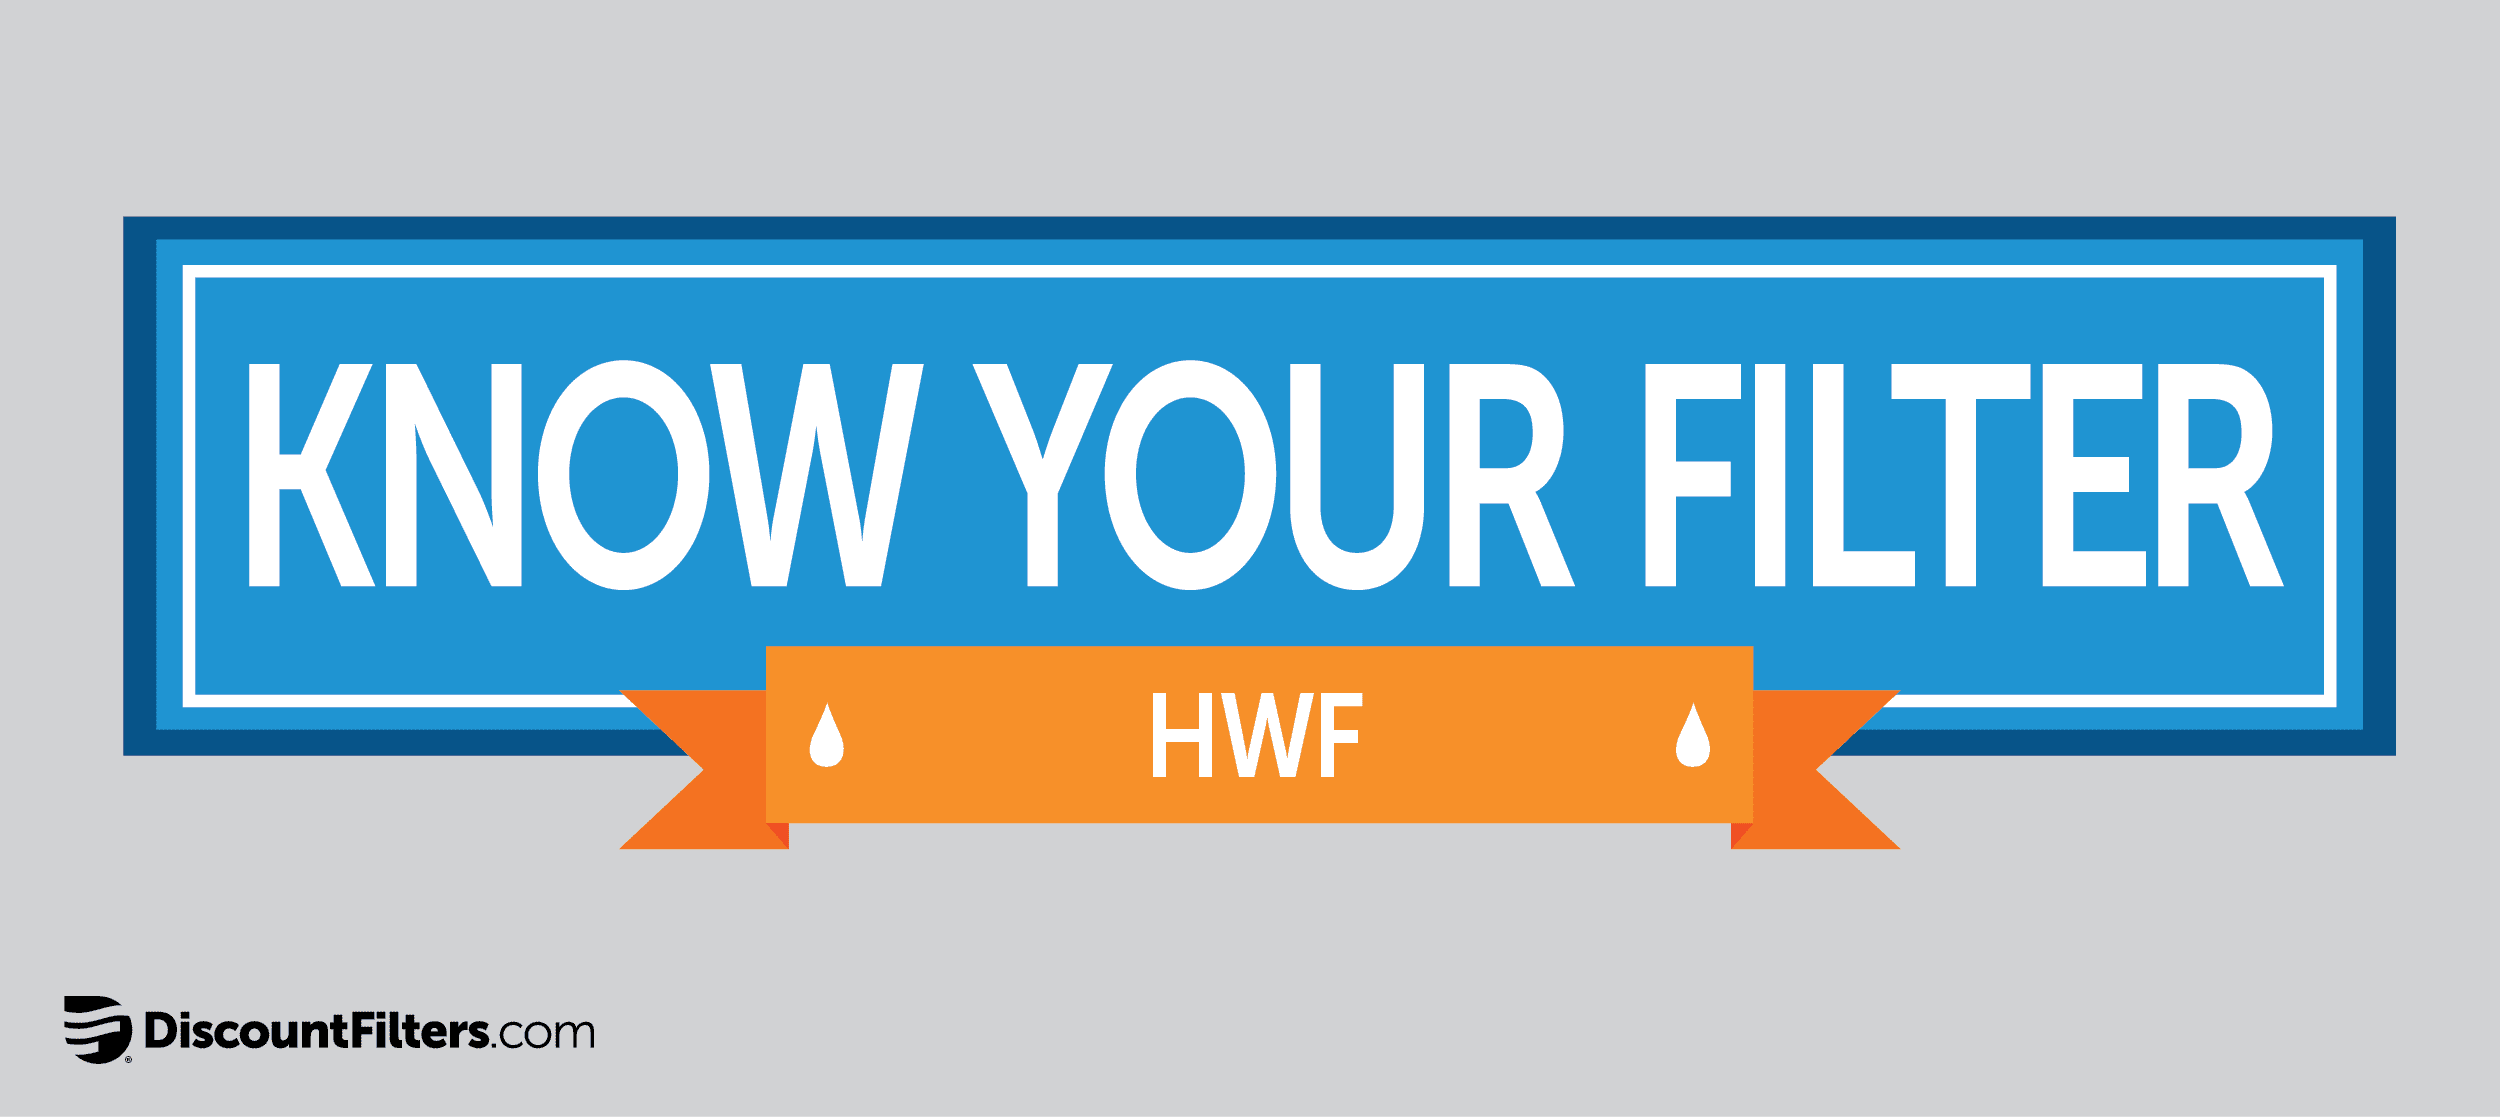 mwf replacement filter: hwf